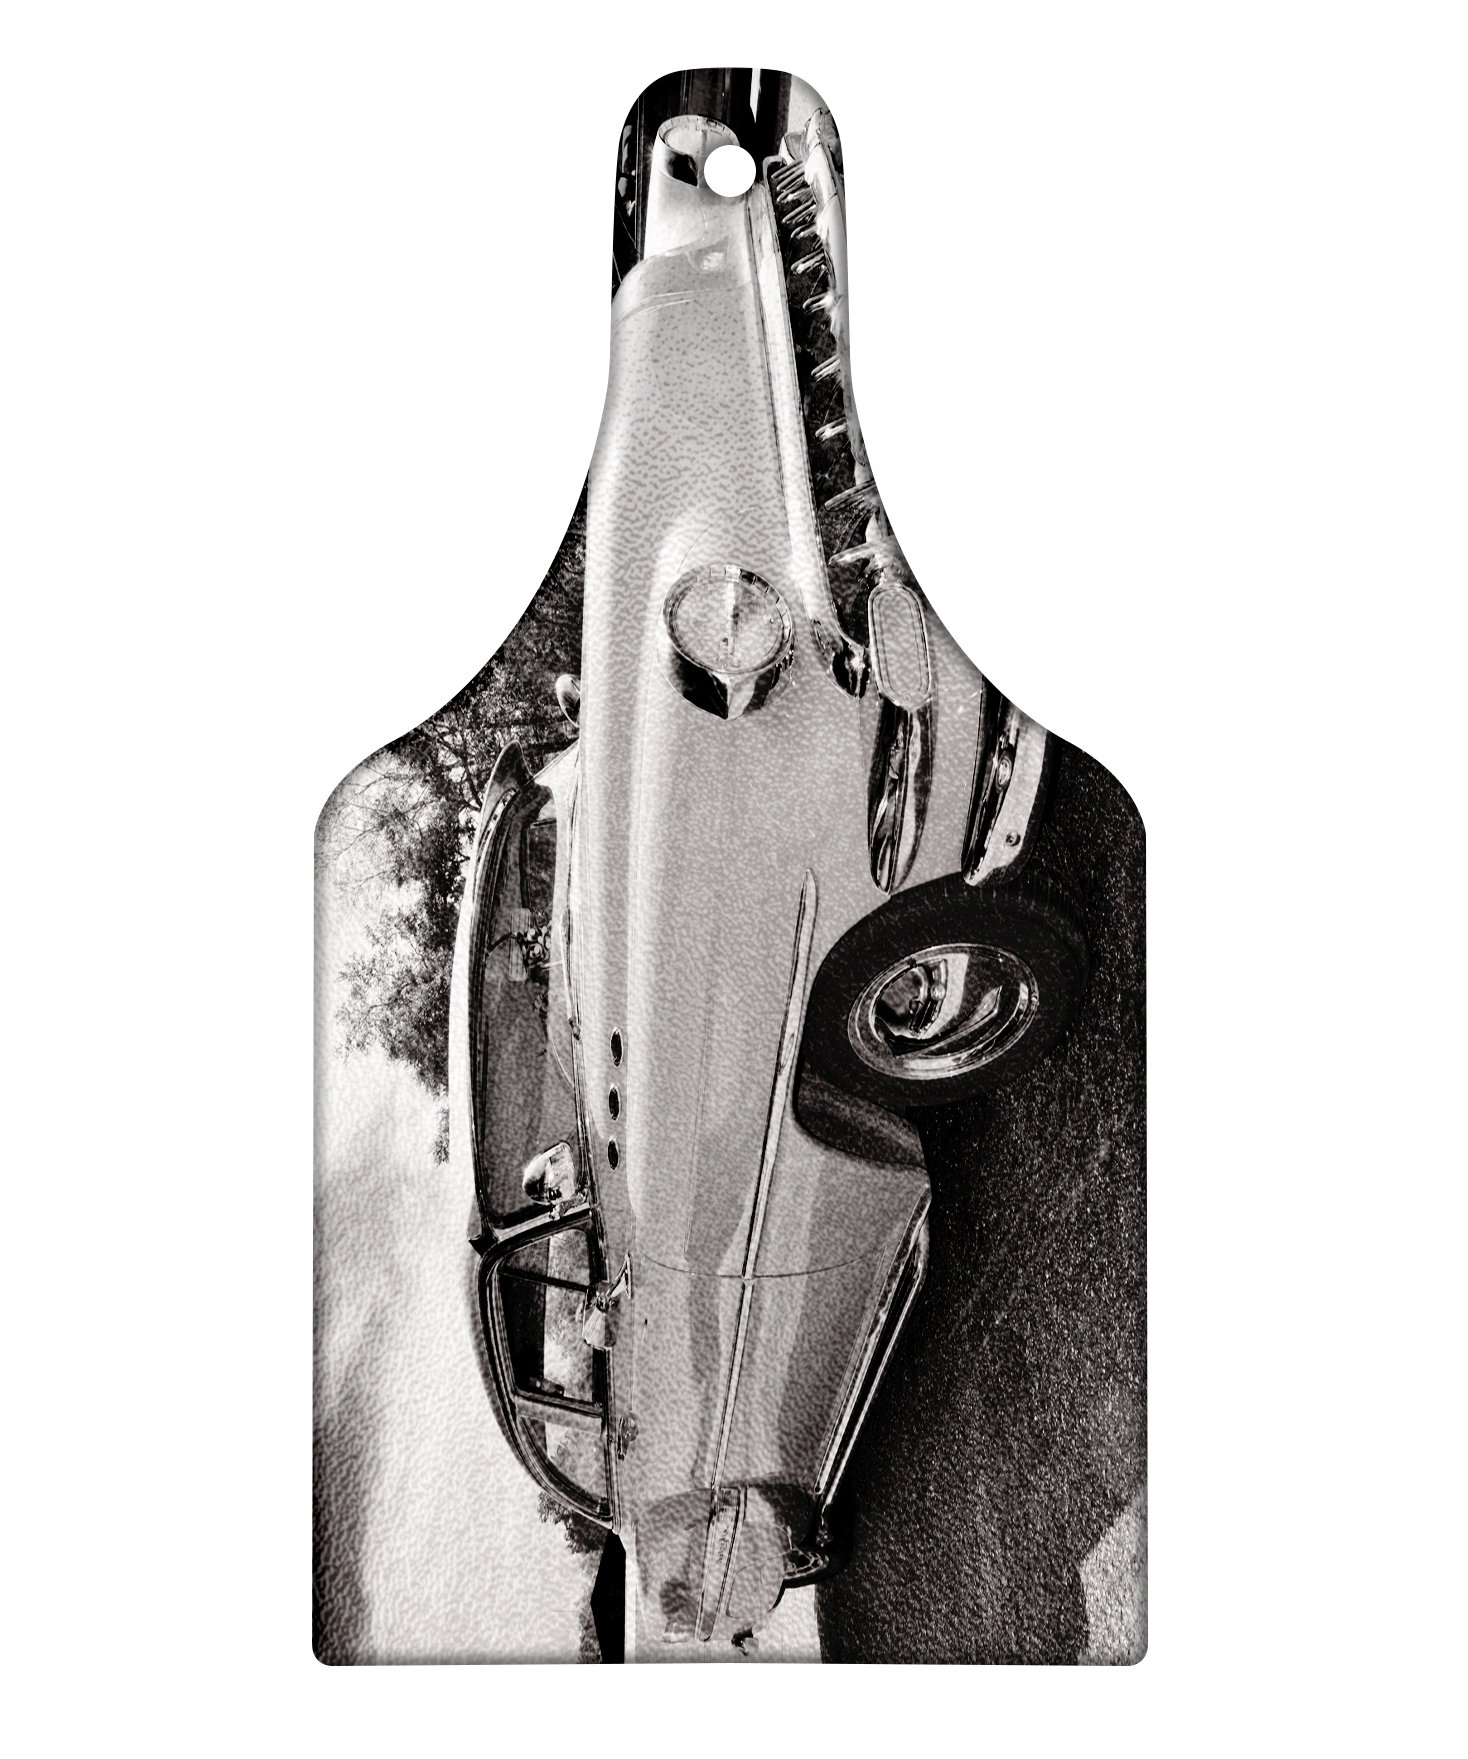 Lunarable Vintage Cutting Board, 50s 60s Retro Classic Pin Up Style Cars in Hollywood Movies Image Artwork, Decorative Tempered Glass Cutting and Serving Board, Wine Bottle Shape, Black White and Gray